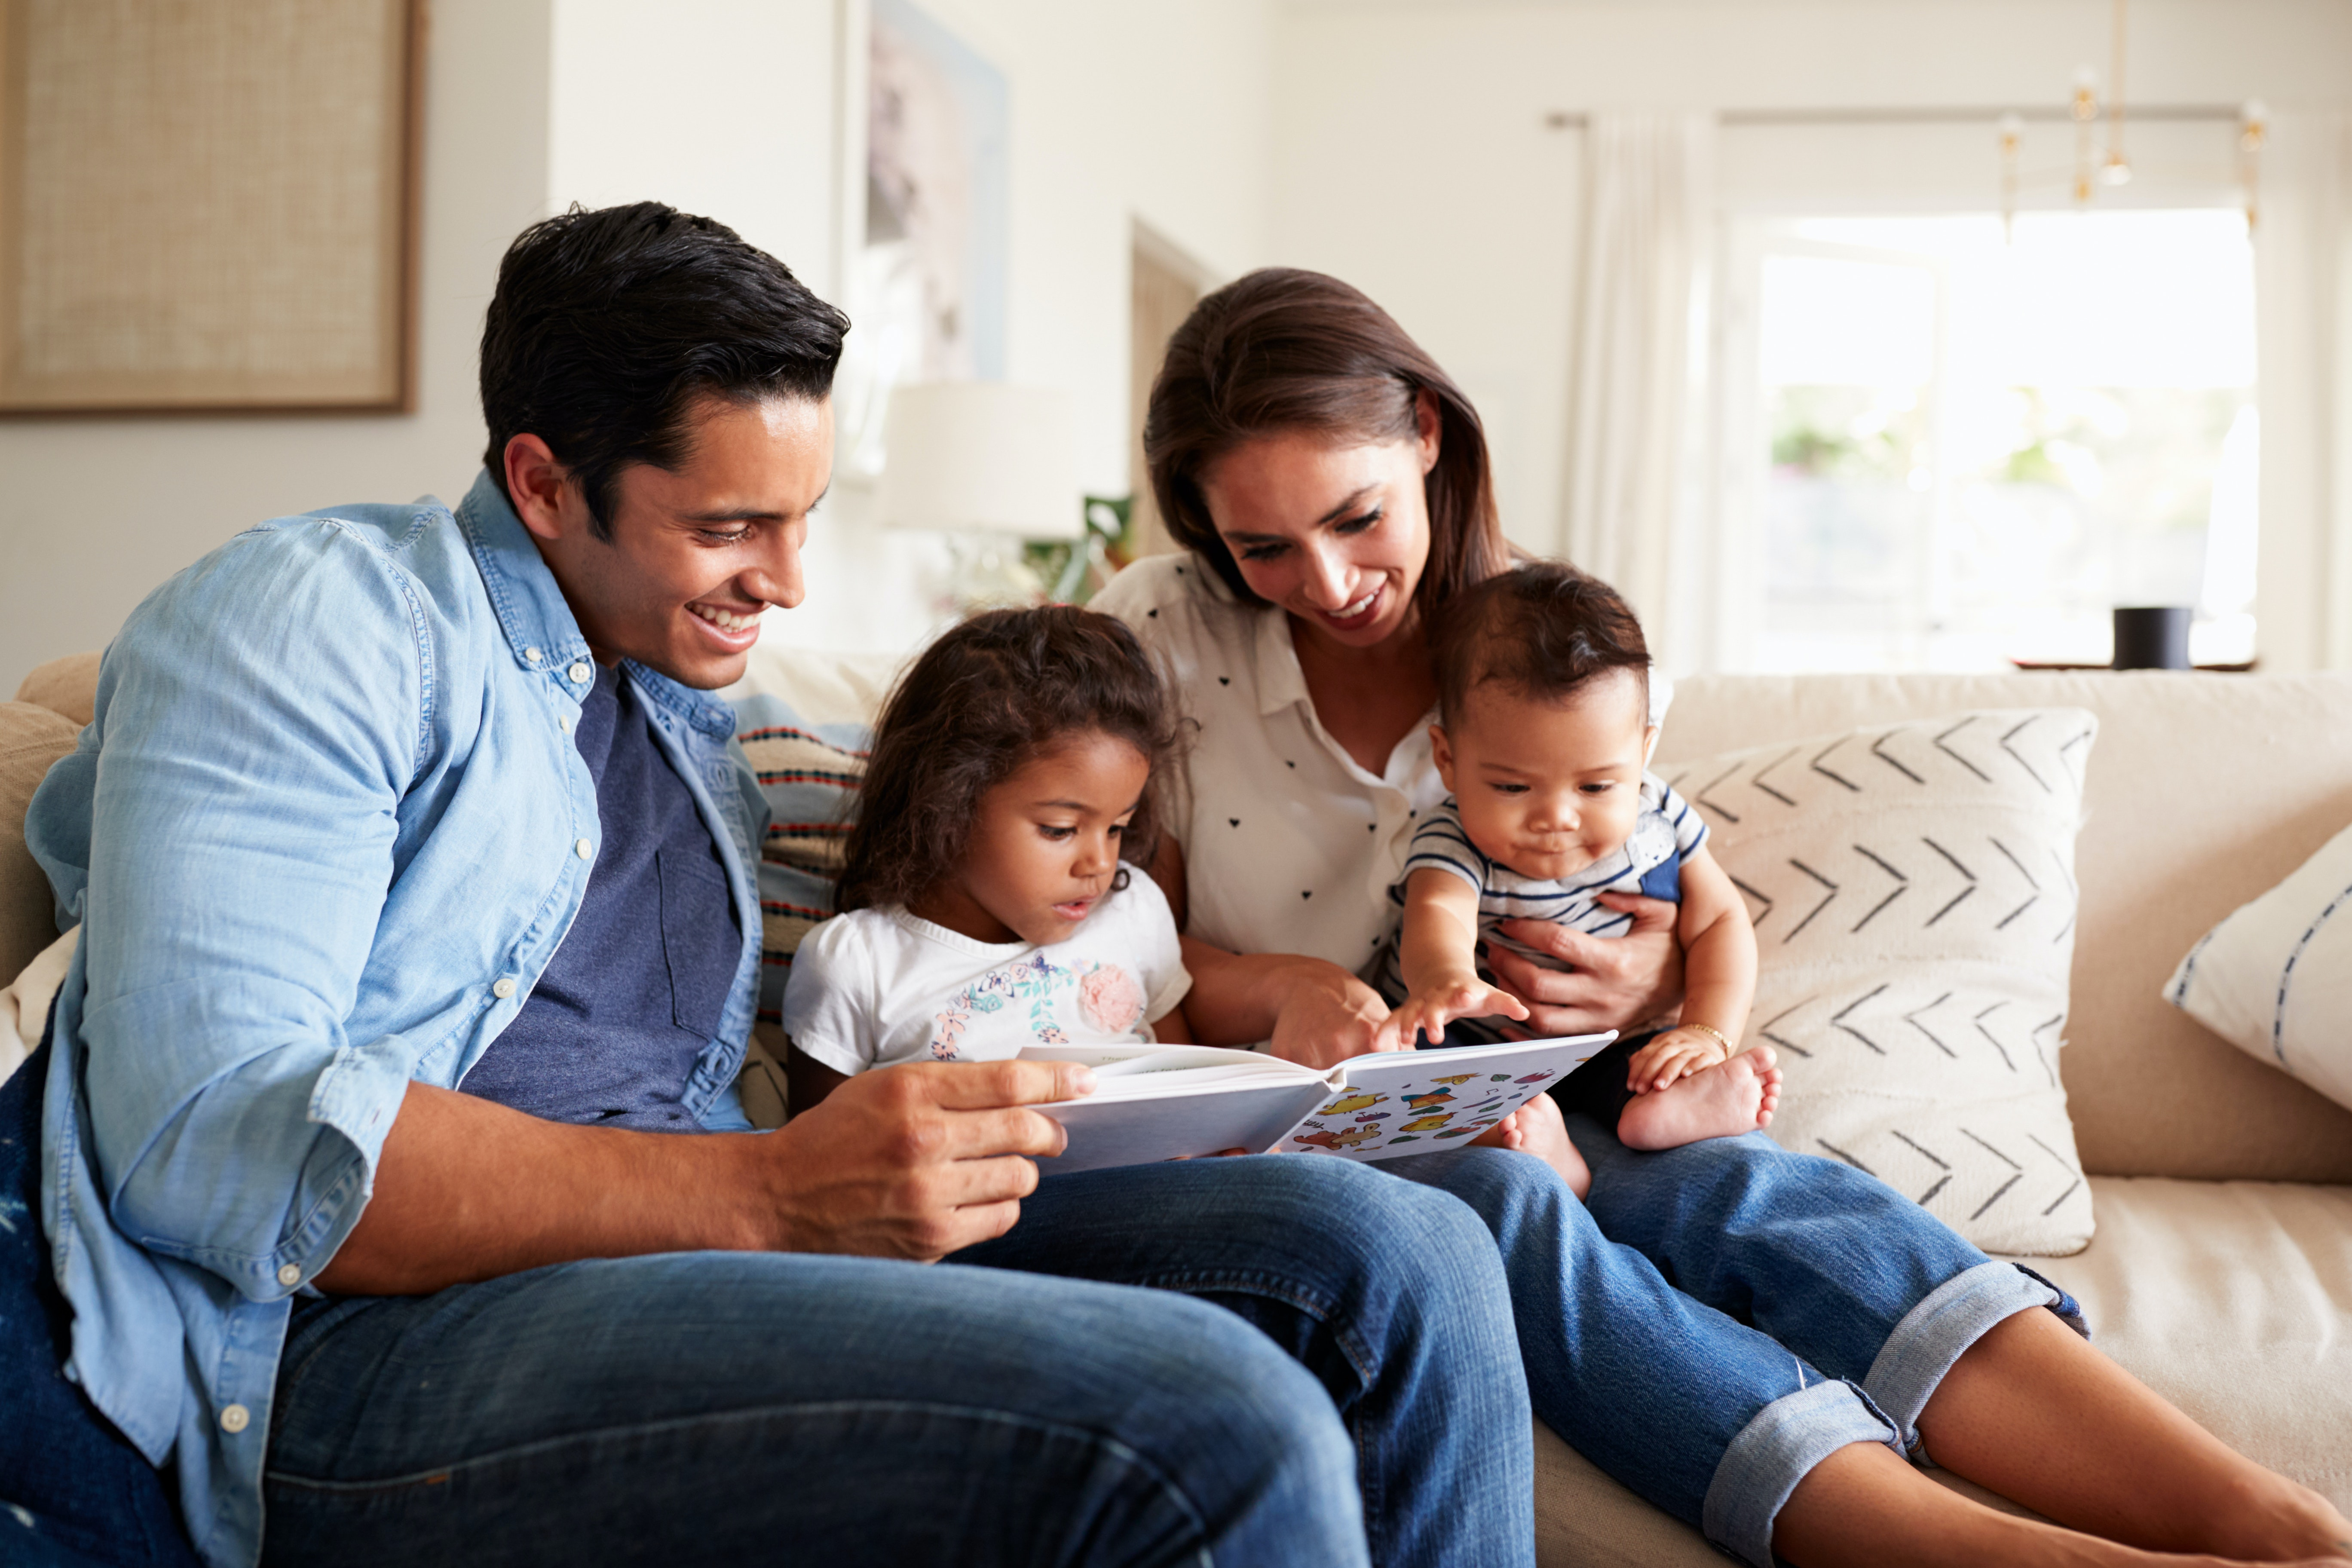 Diverse family sitting together on sofa